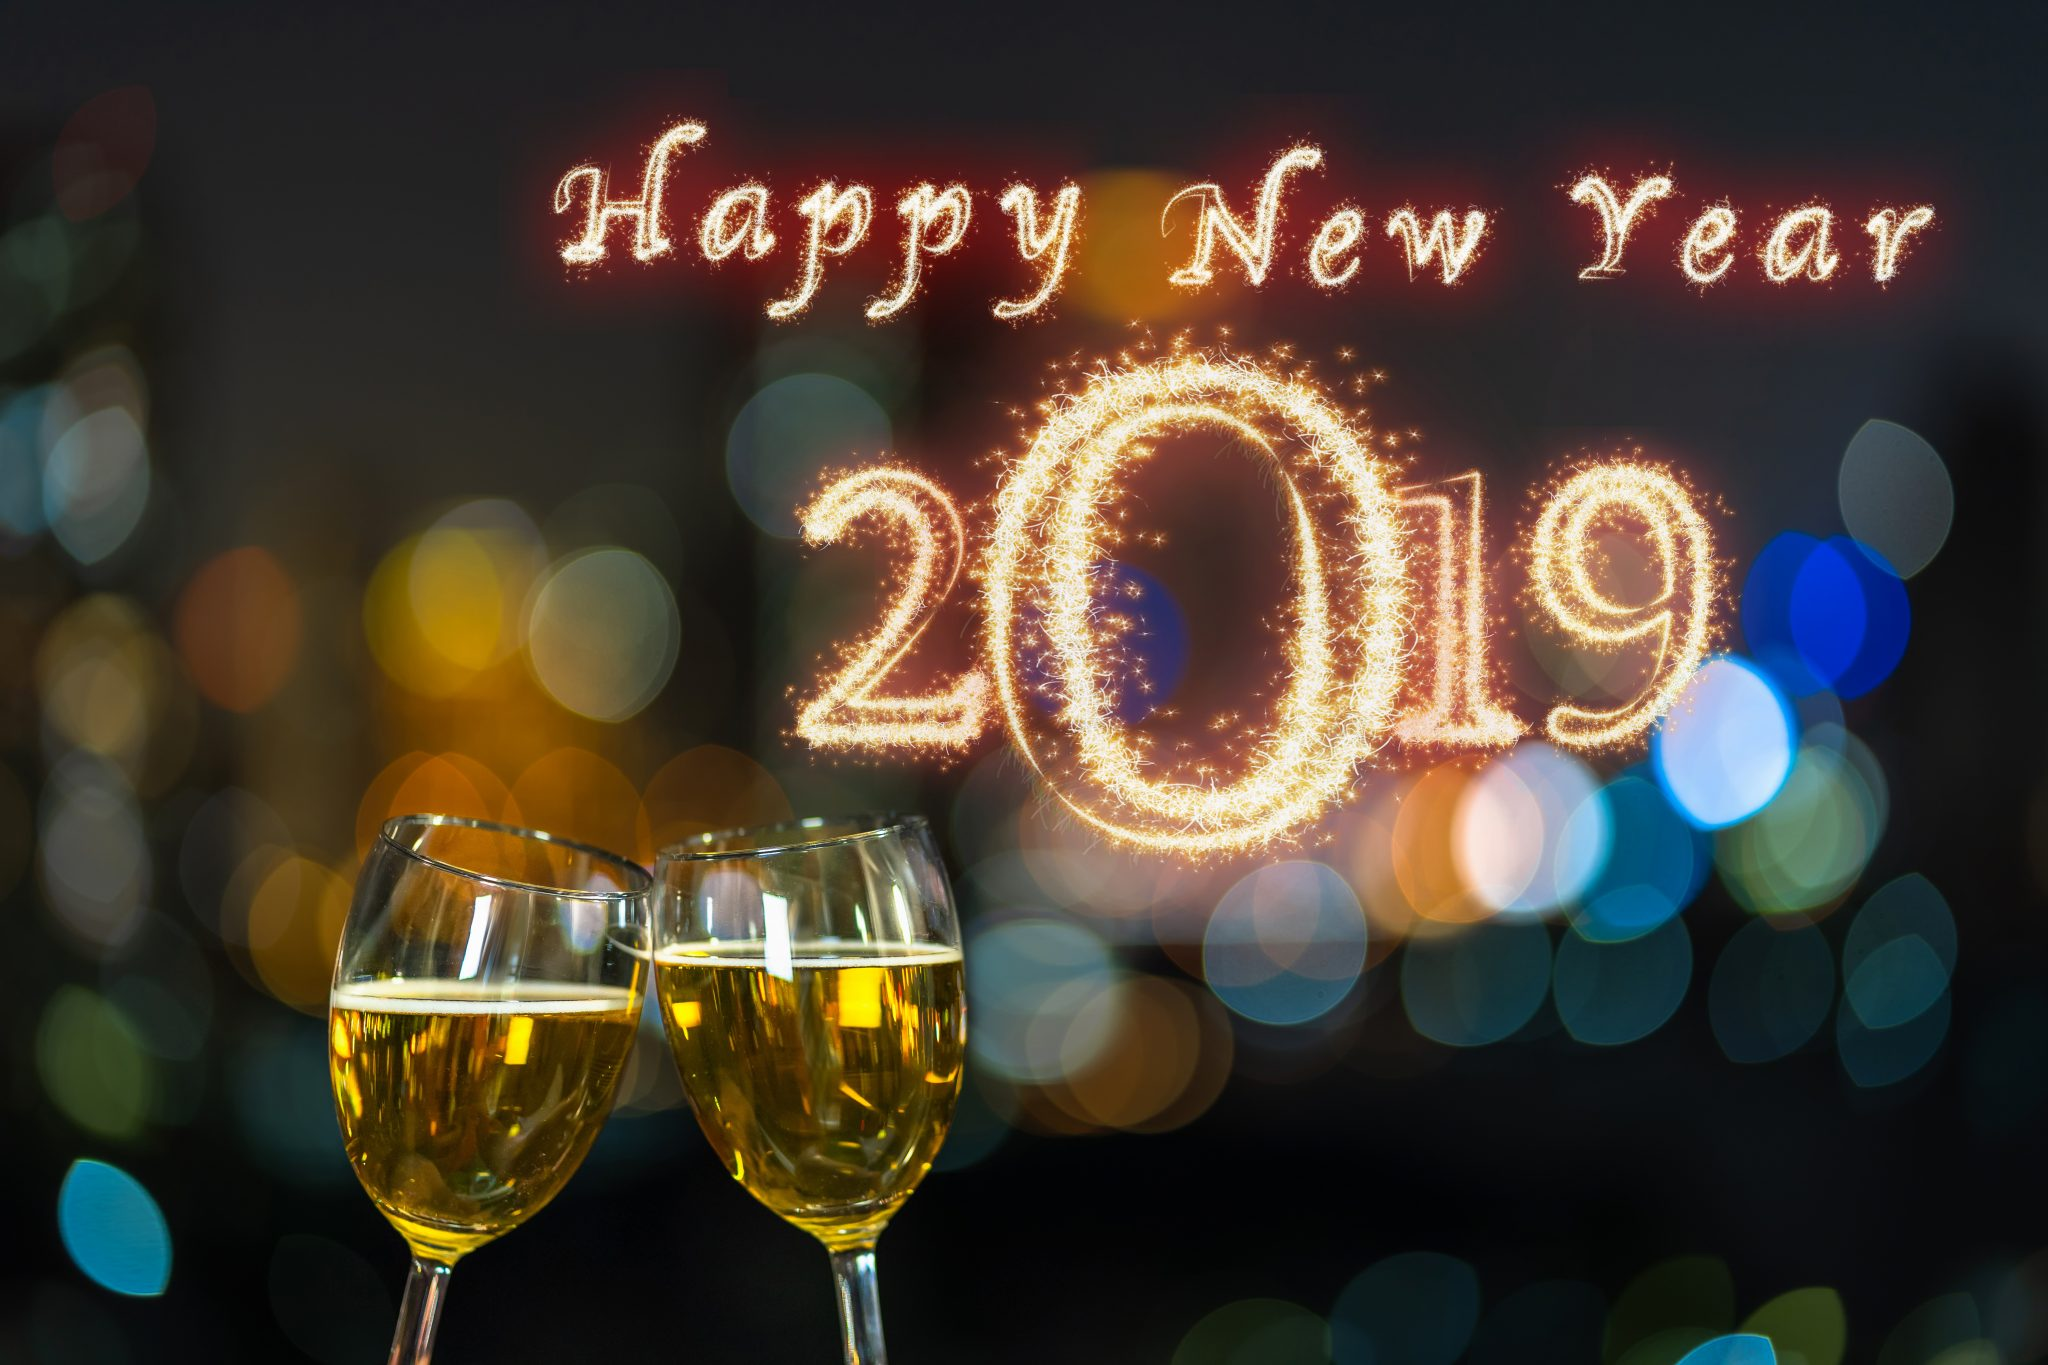 E-Lunet Optic team wishes you Happy New Year 2019!